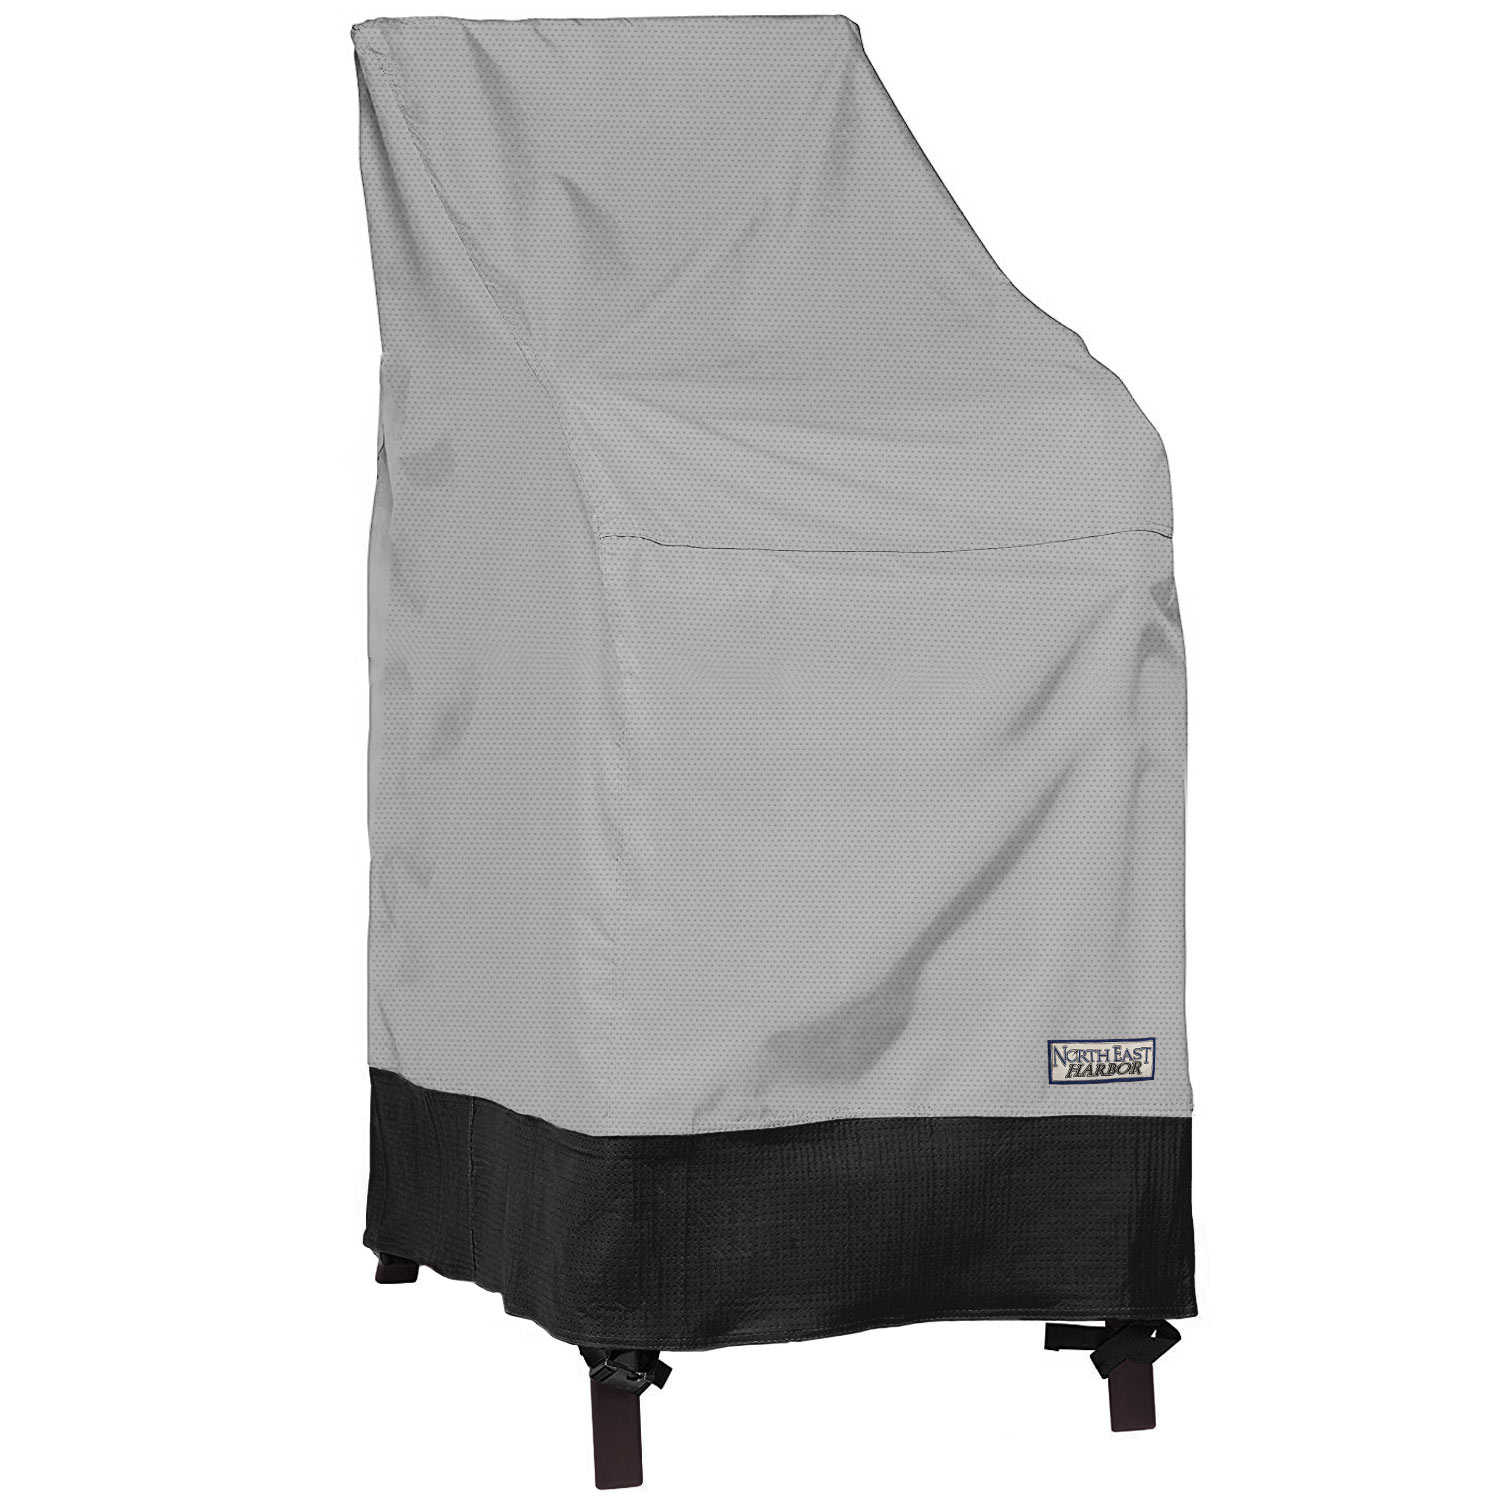 Details About Outdoor Stackable Chair Patio Furniture Cover 28w X 30d X 49h Grayblack in size 1500 X 1500